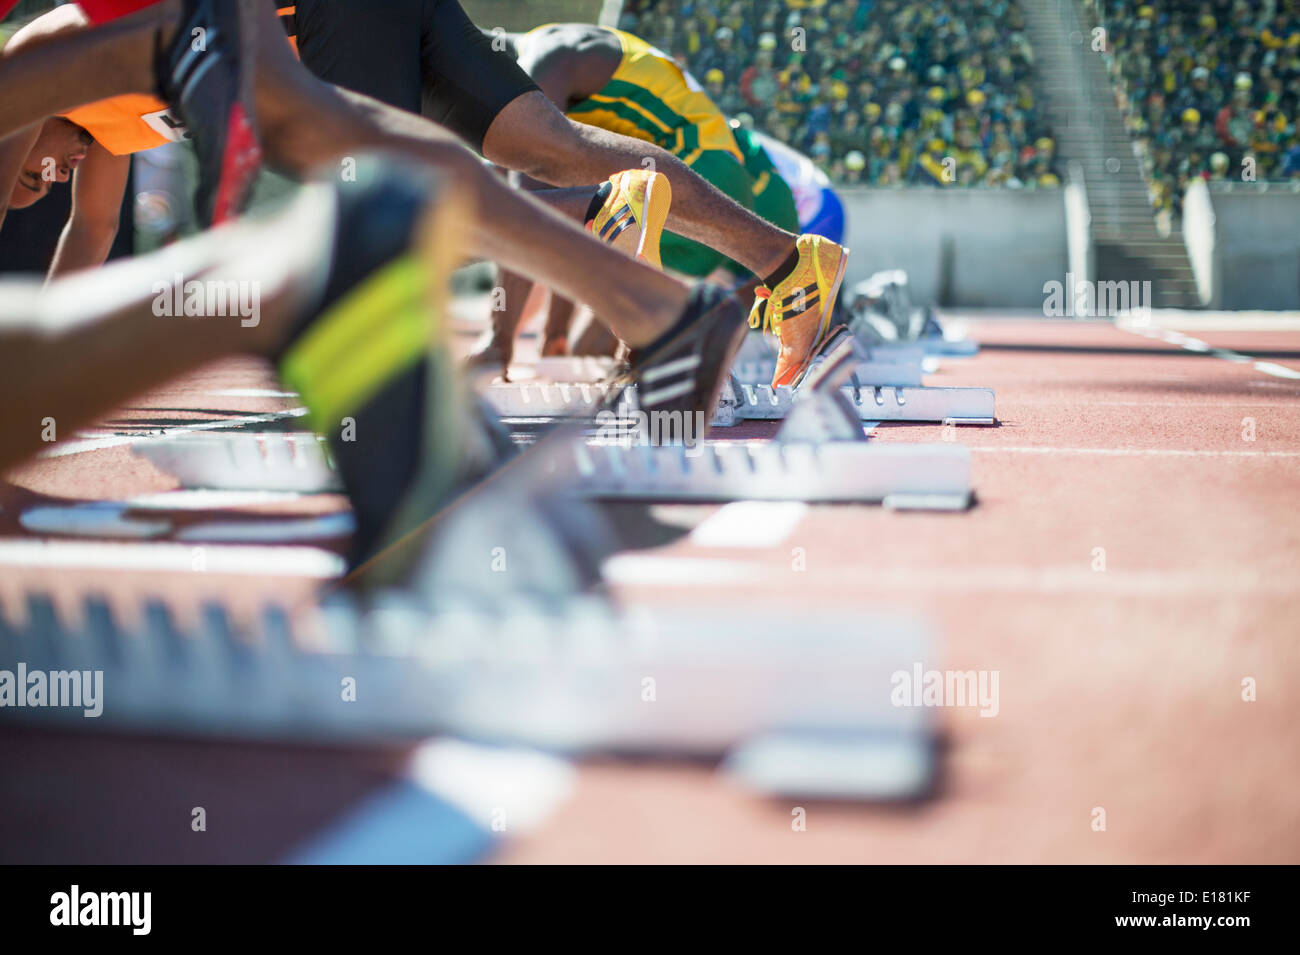 Runners poised at starting blocks on track - Stock Image